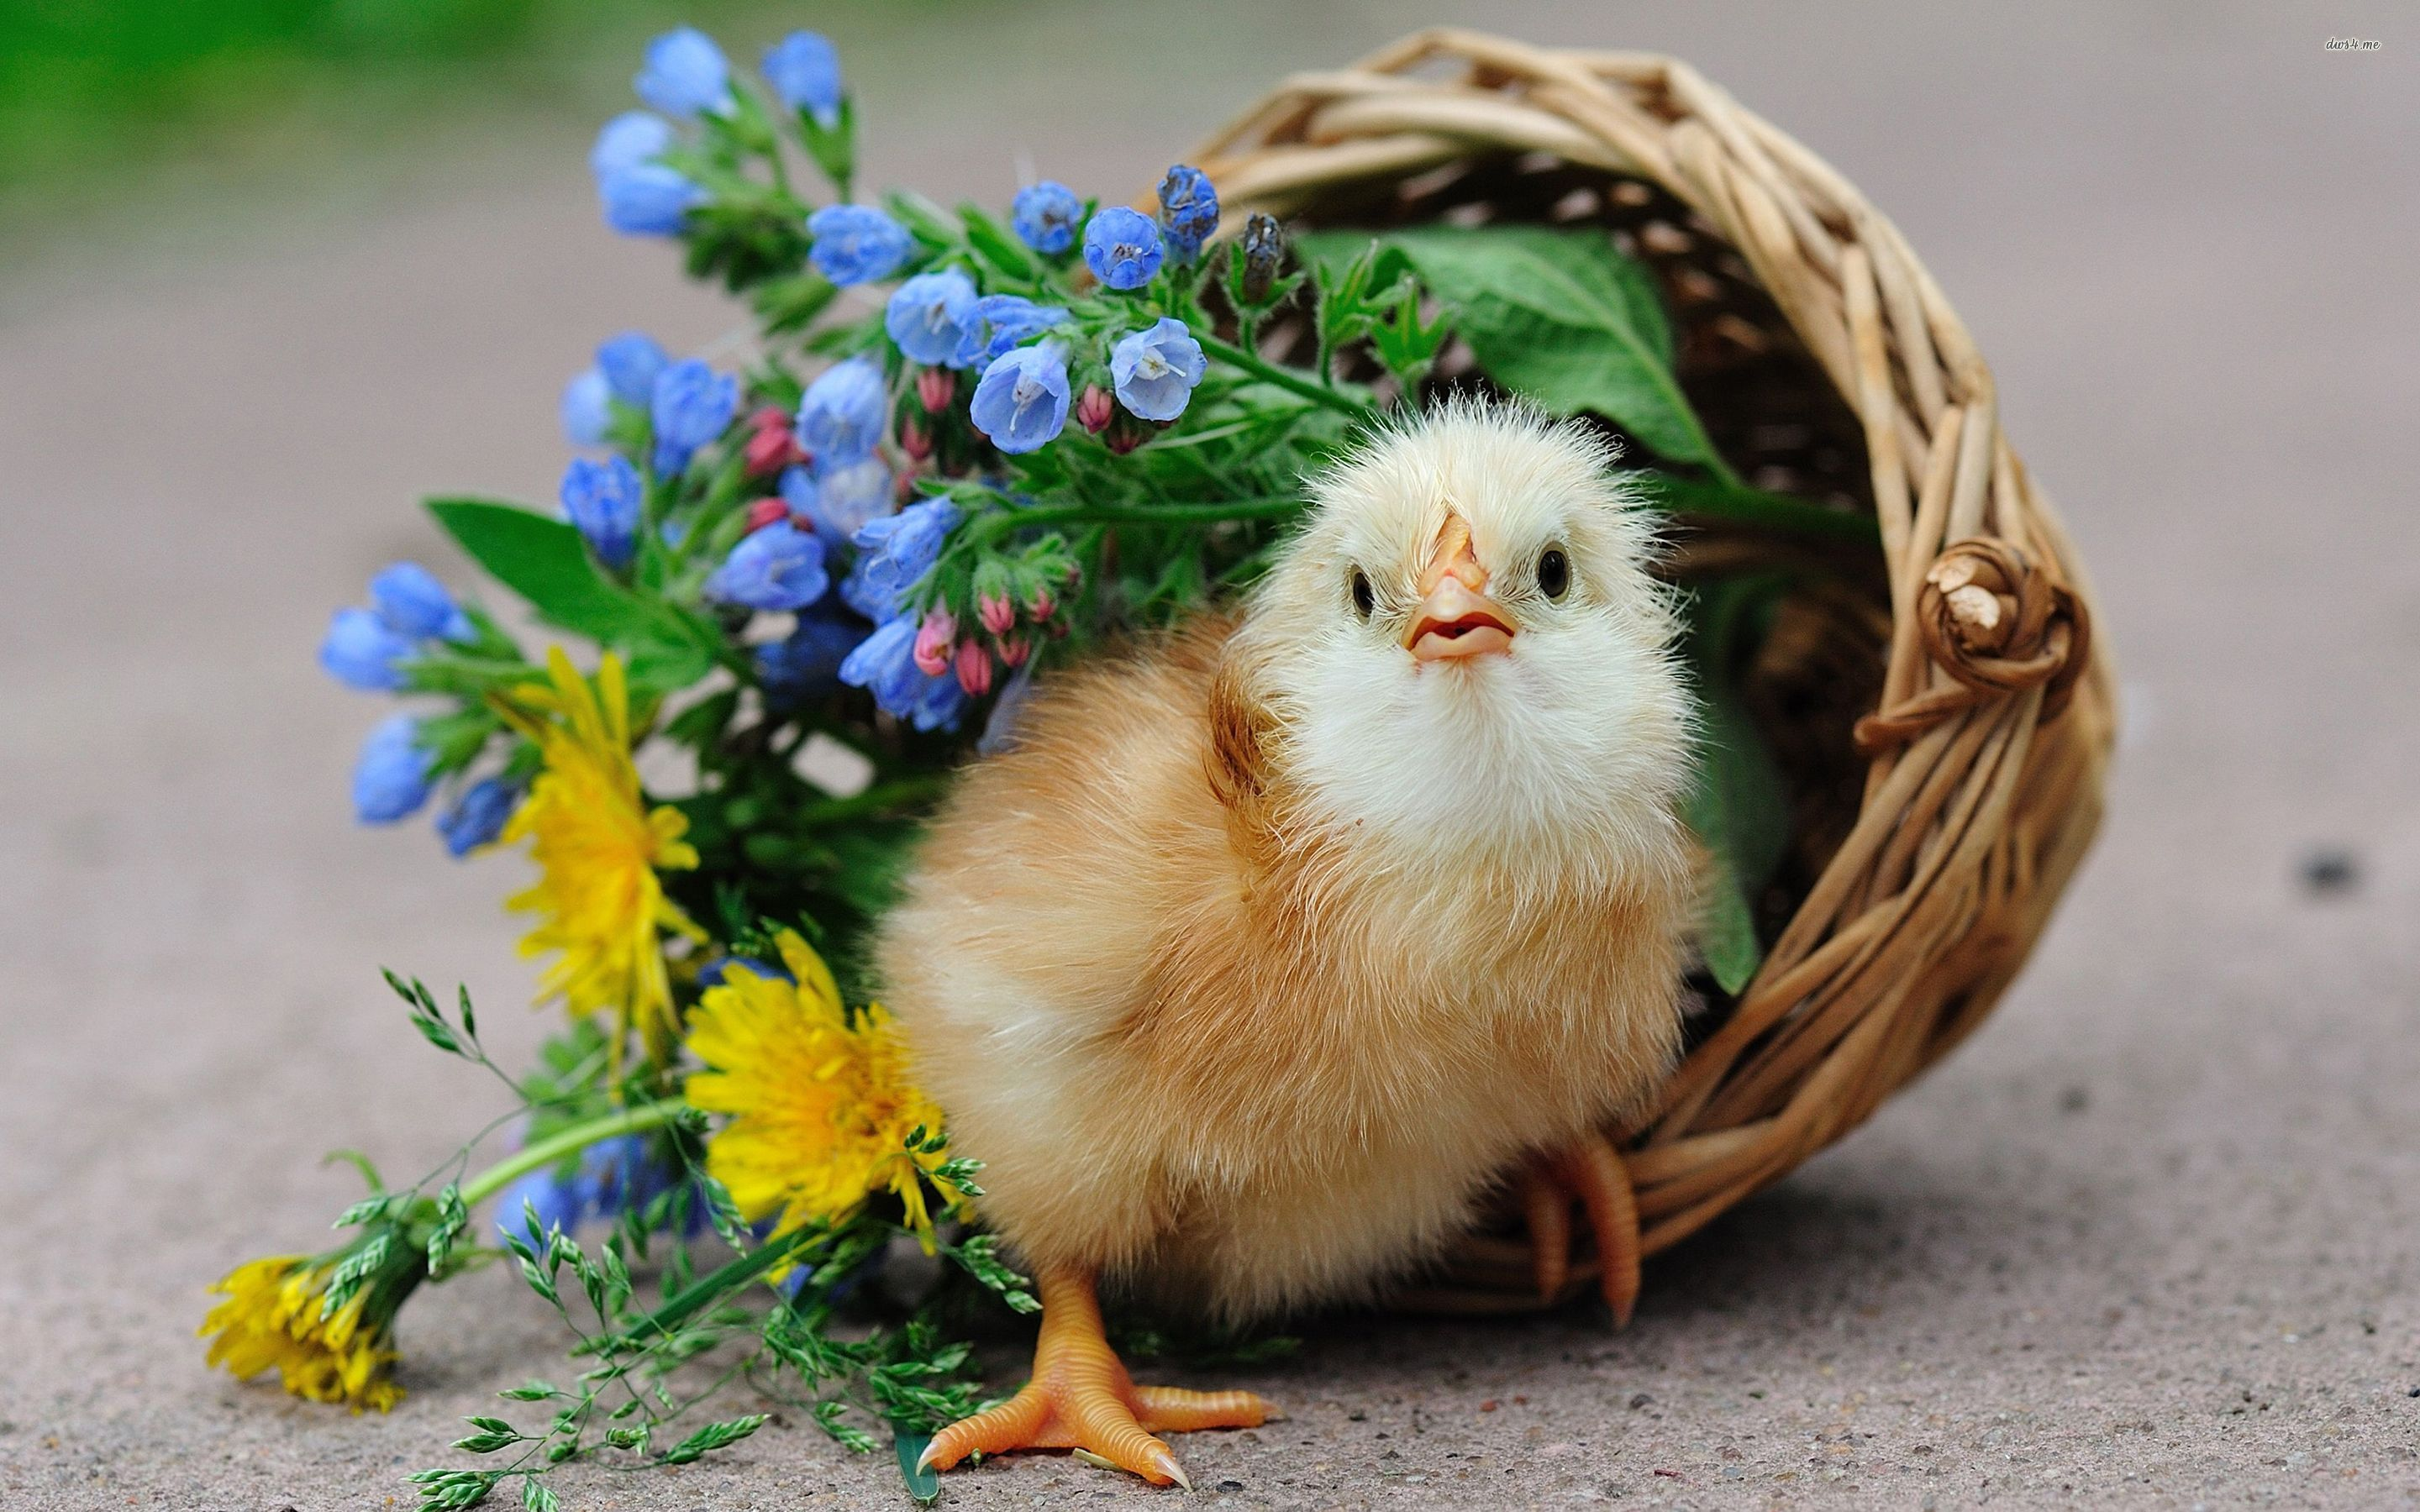 Chick in a floral basket wallpapers